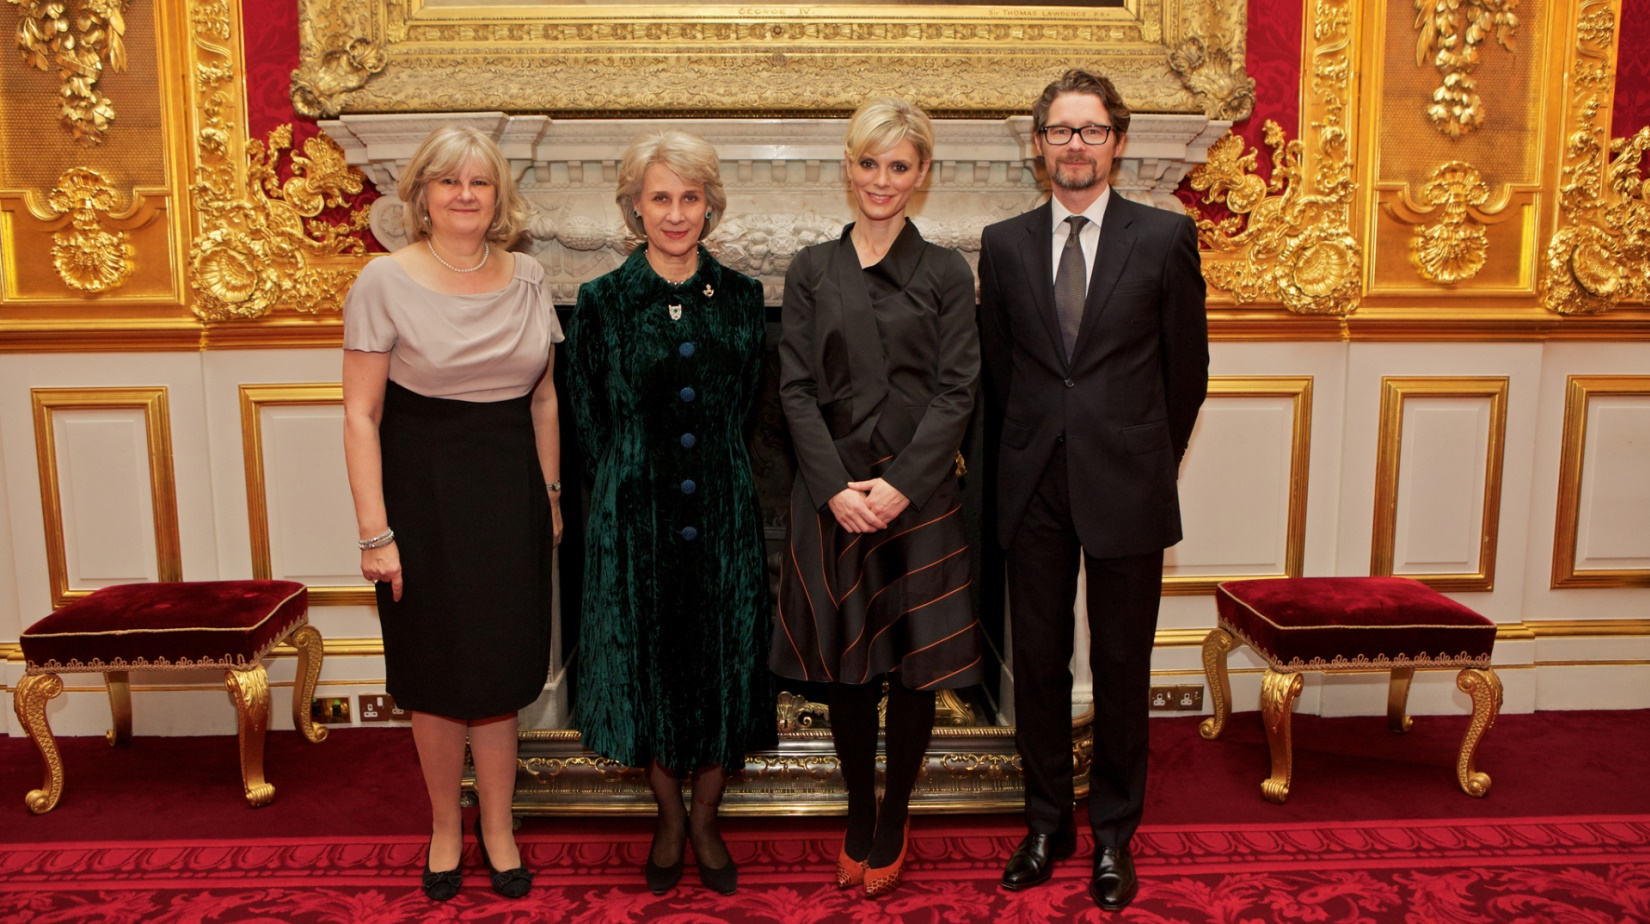 The Duchess of Gloucester with others at St James Palace